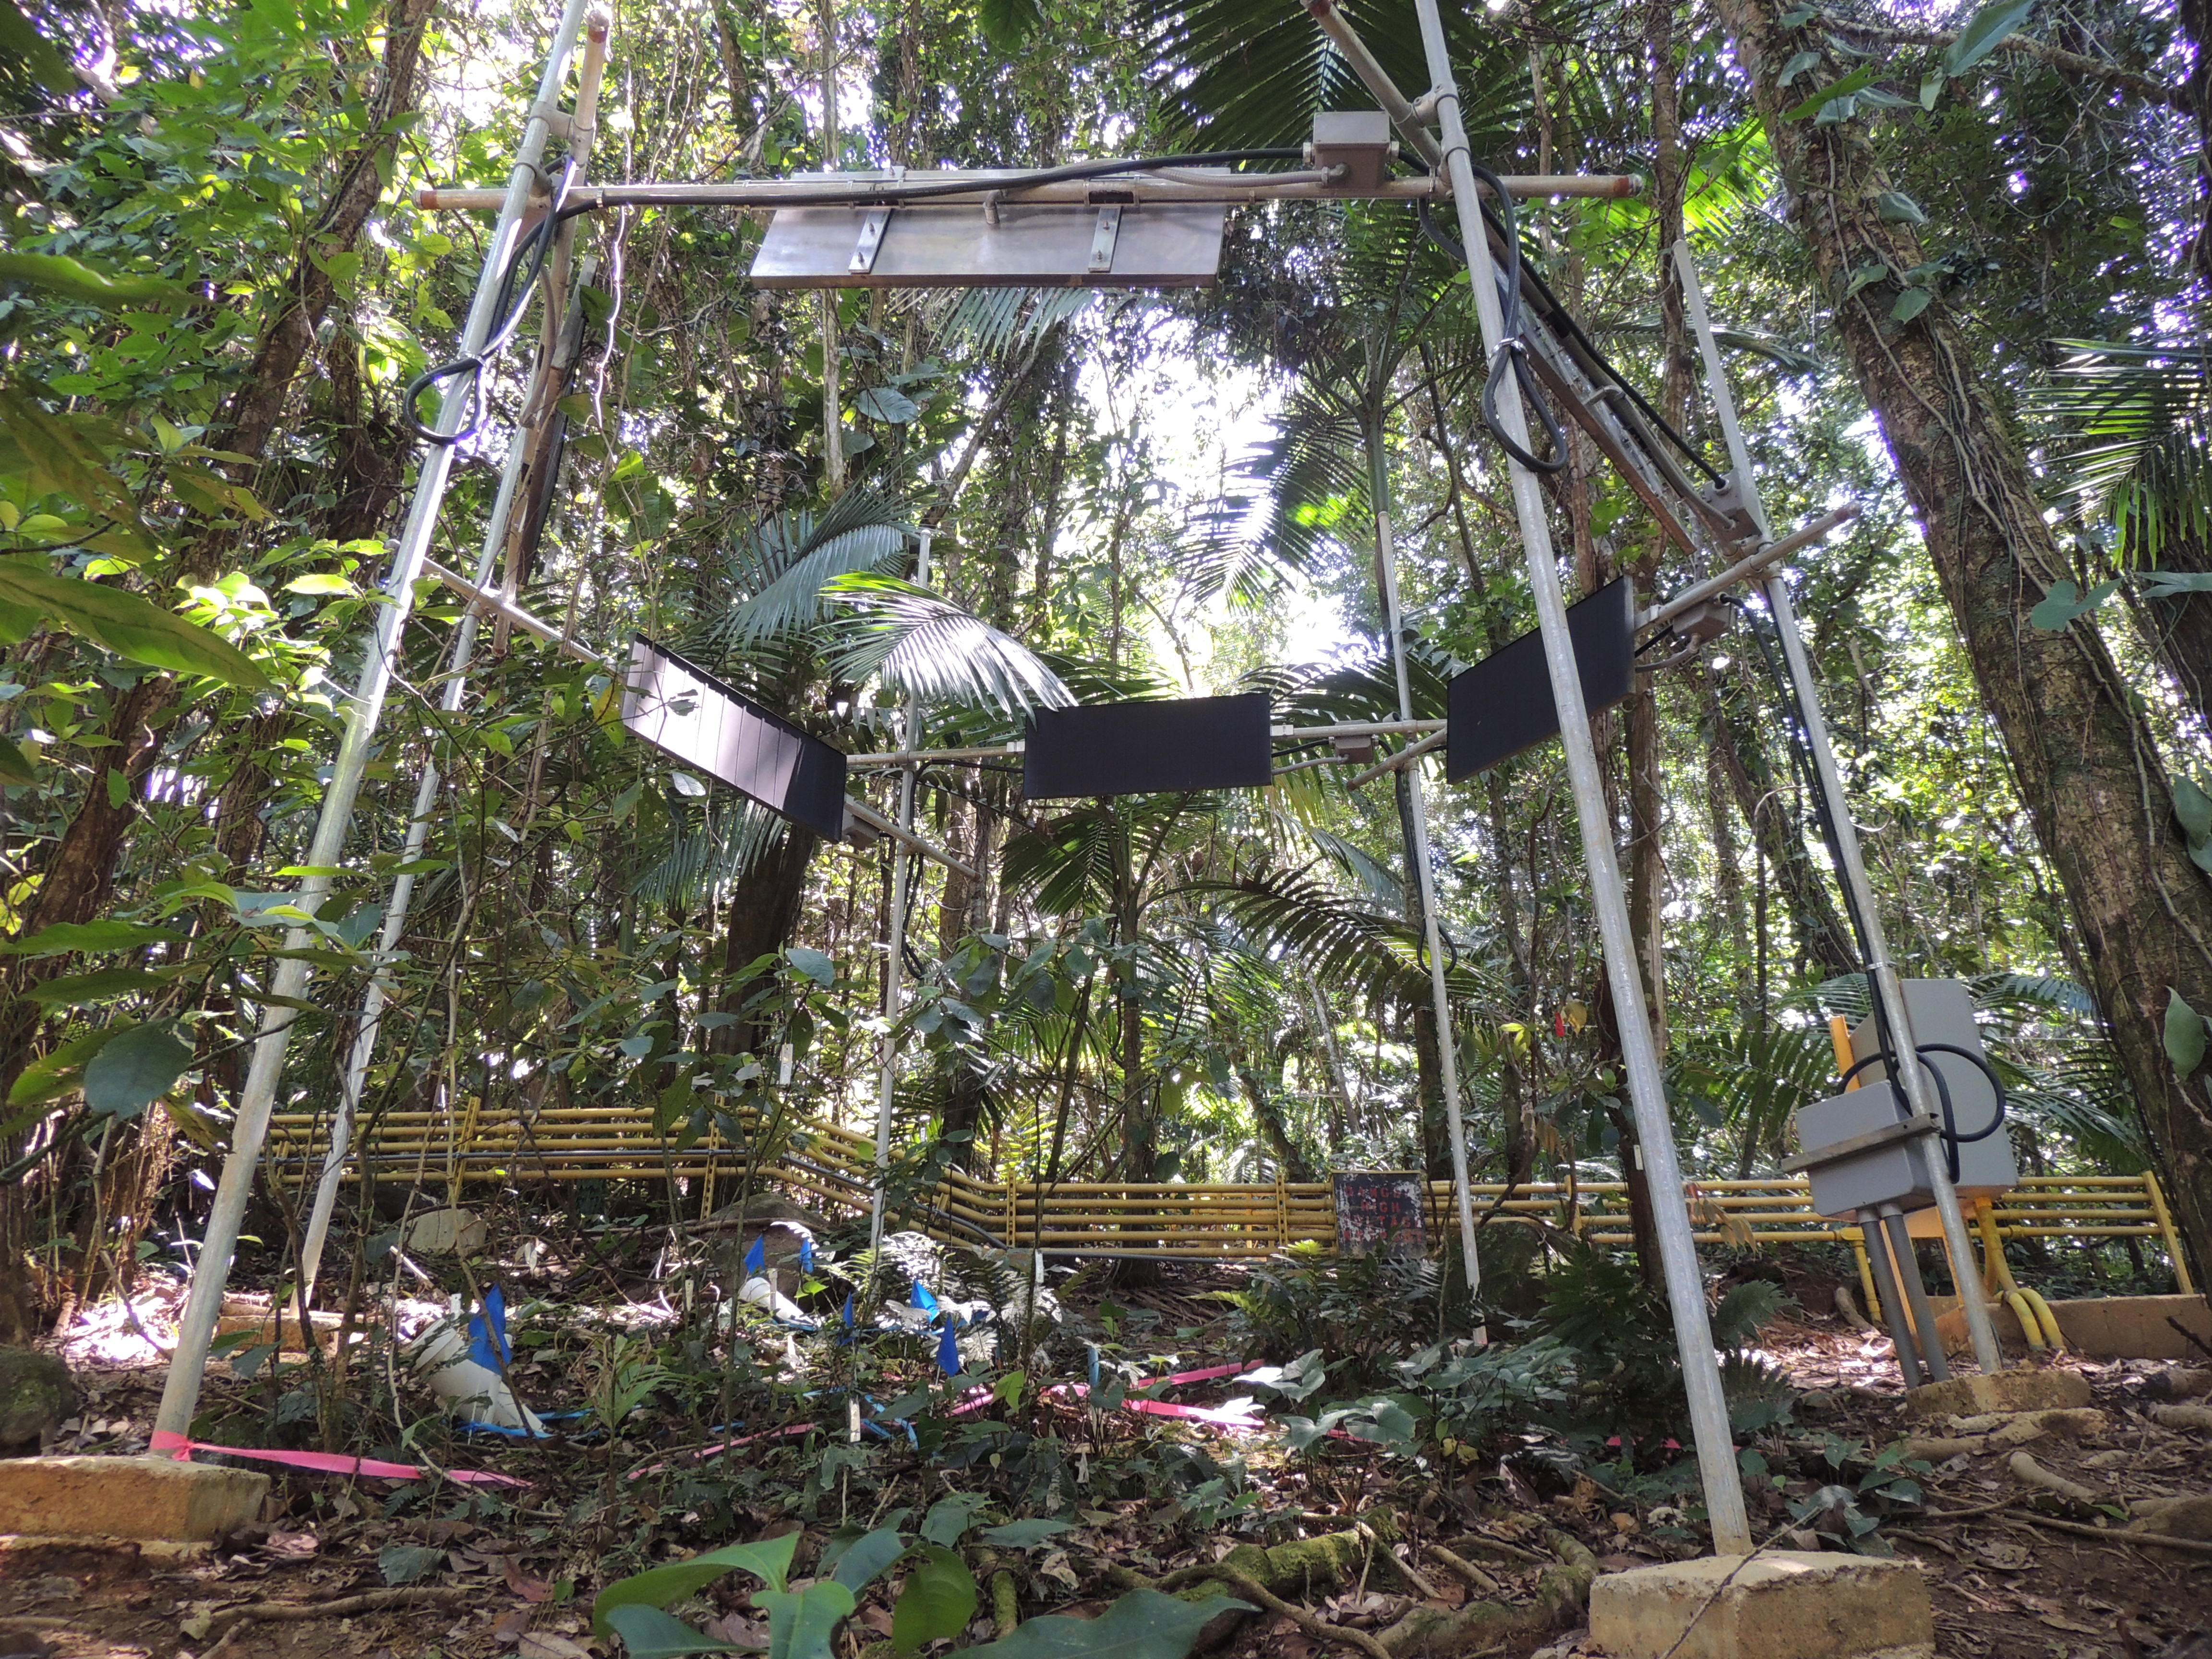 One of the TRACE experimental warming plots in 2015, before the experiment fully started. There was much more forest canopy and foliage in this site before the hurricanes hit in 2017.